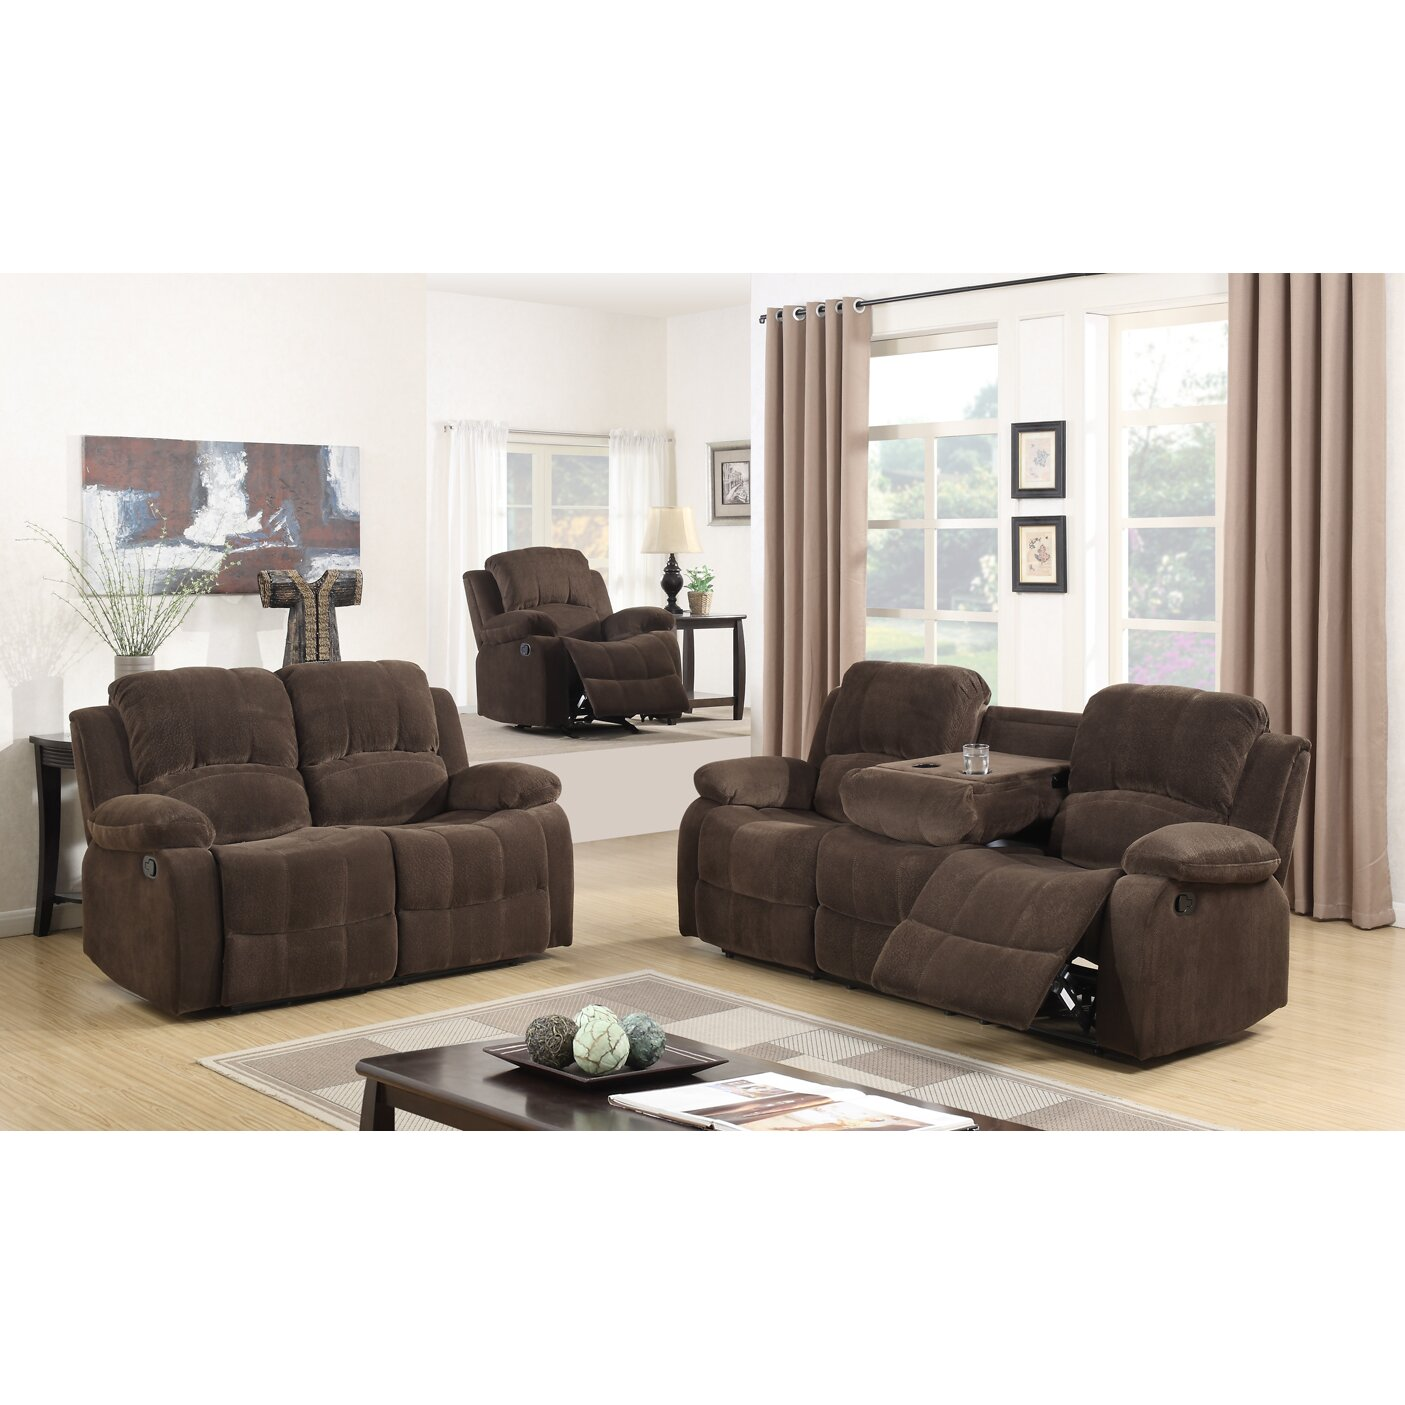 Best quality furniture fabric 3 piece recliner living room for Living room 3 piece sets